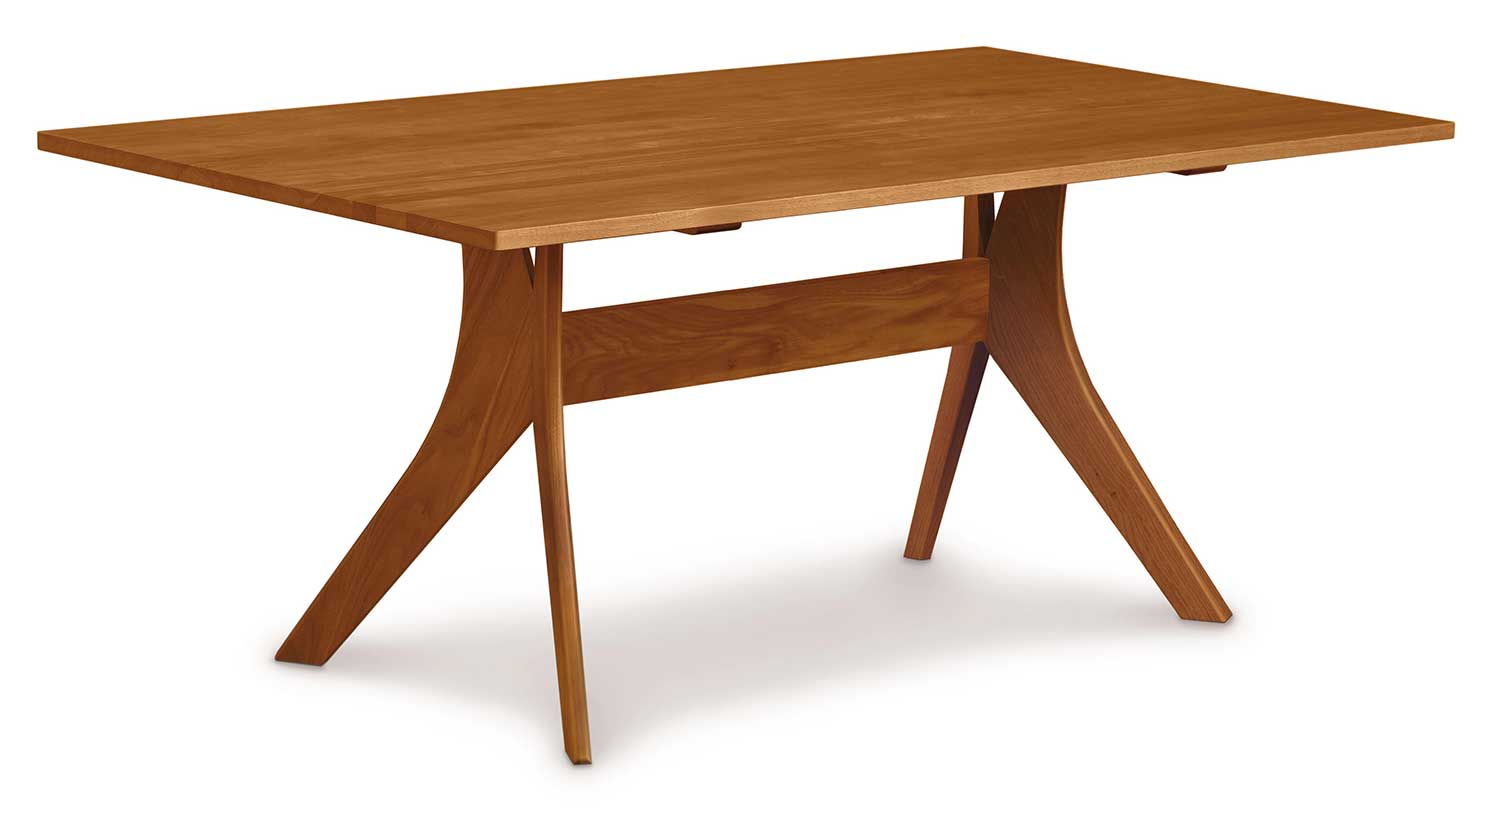 Circle Furniture Audrey Dining Table Fixed Top Table Dining - Circular dining table with extension